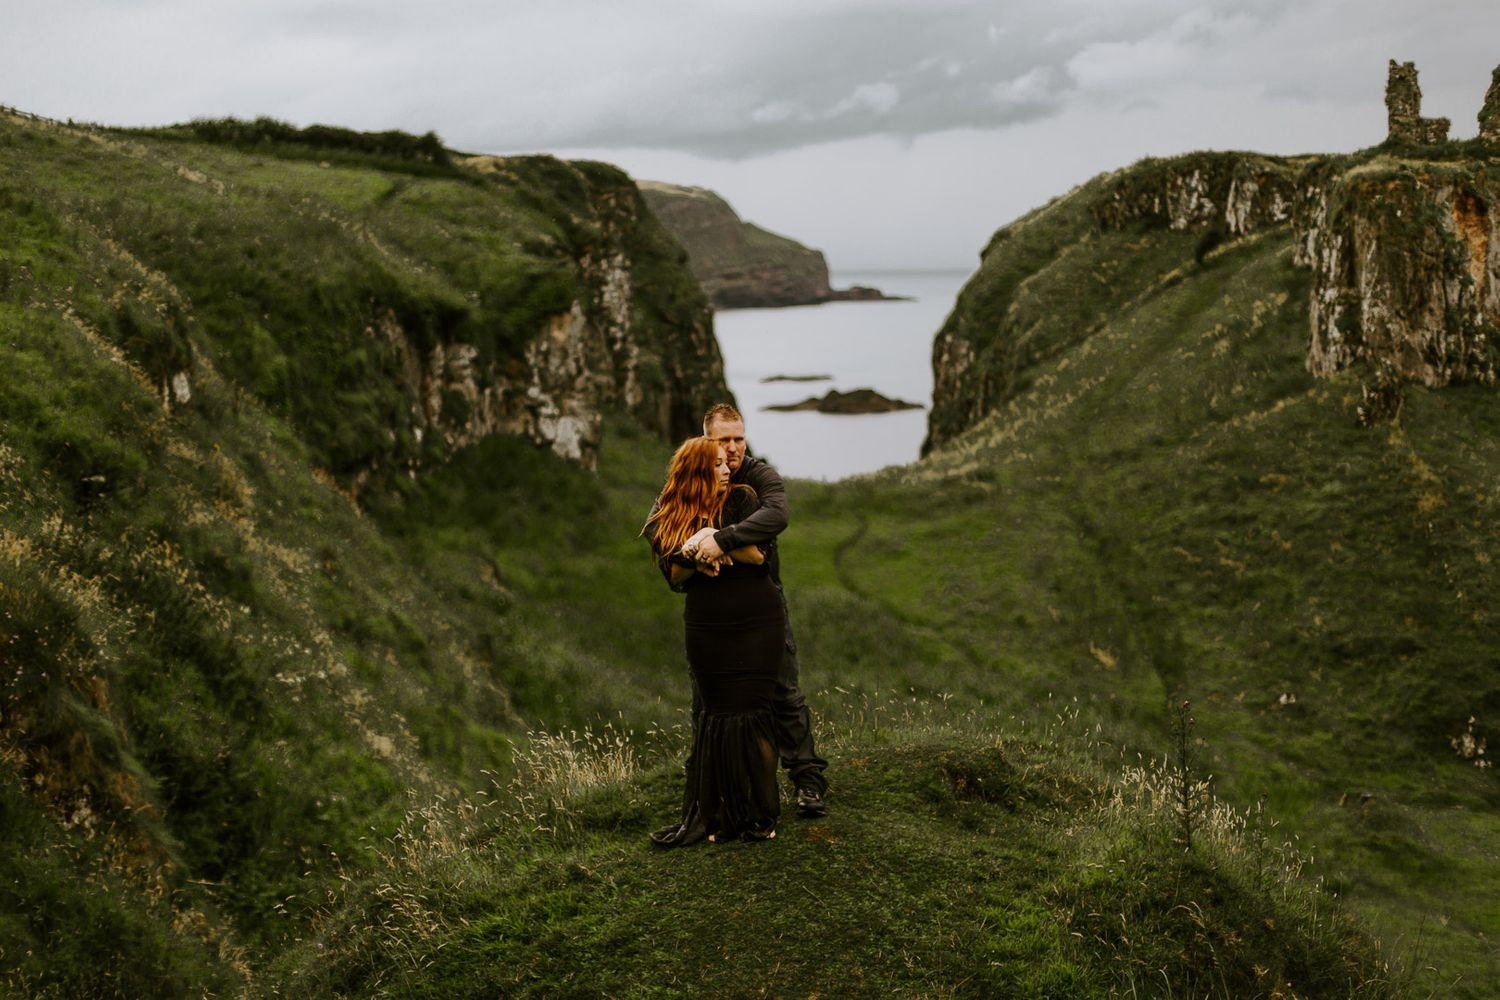 engagement photoshoot in Northern Ireland at Dunseverick Castle